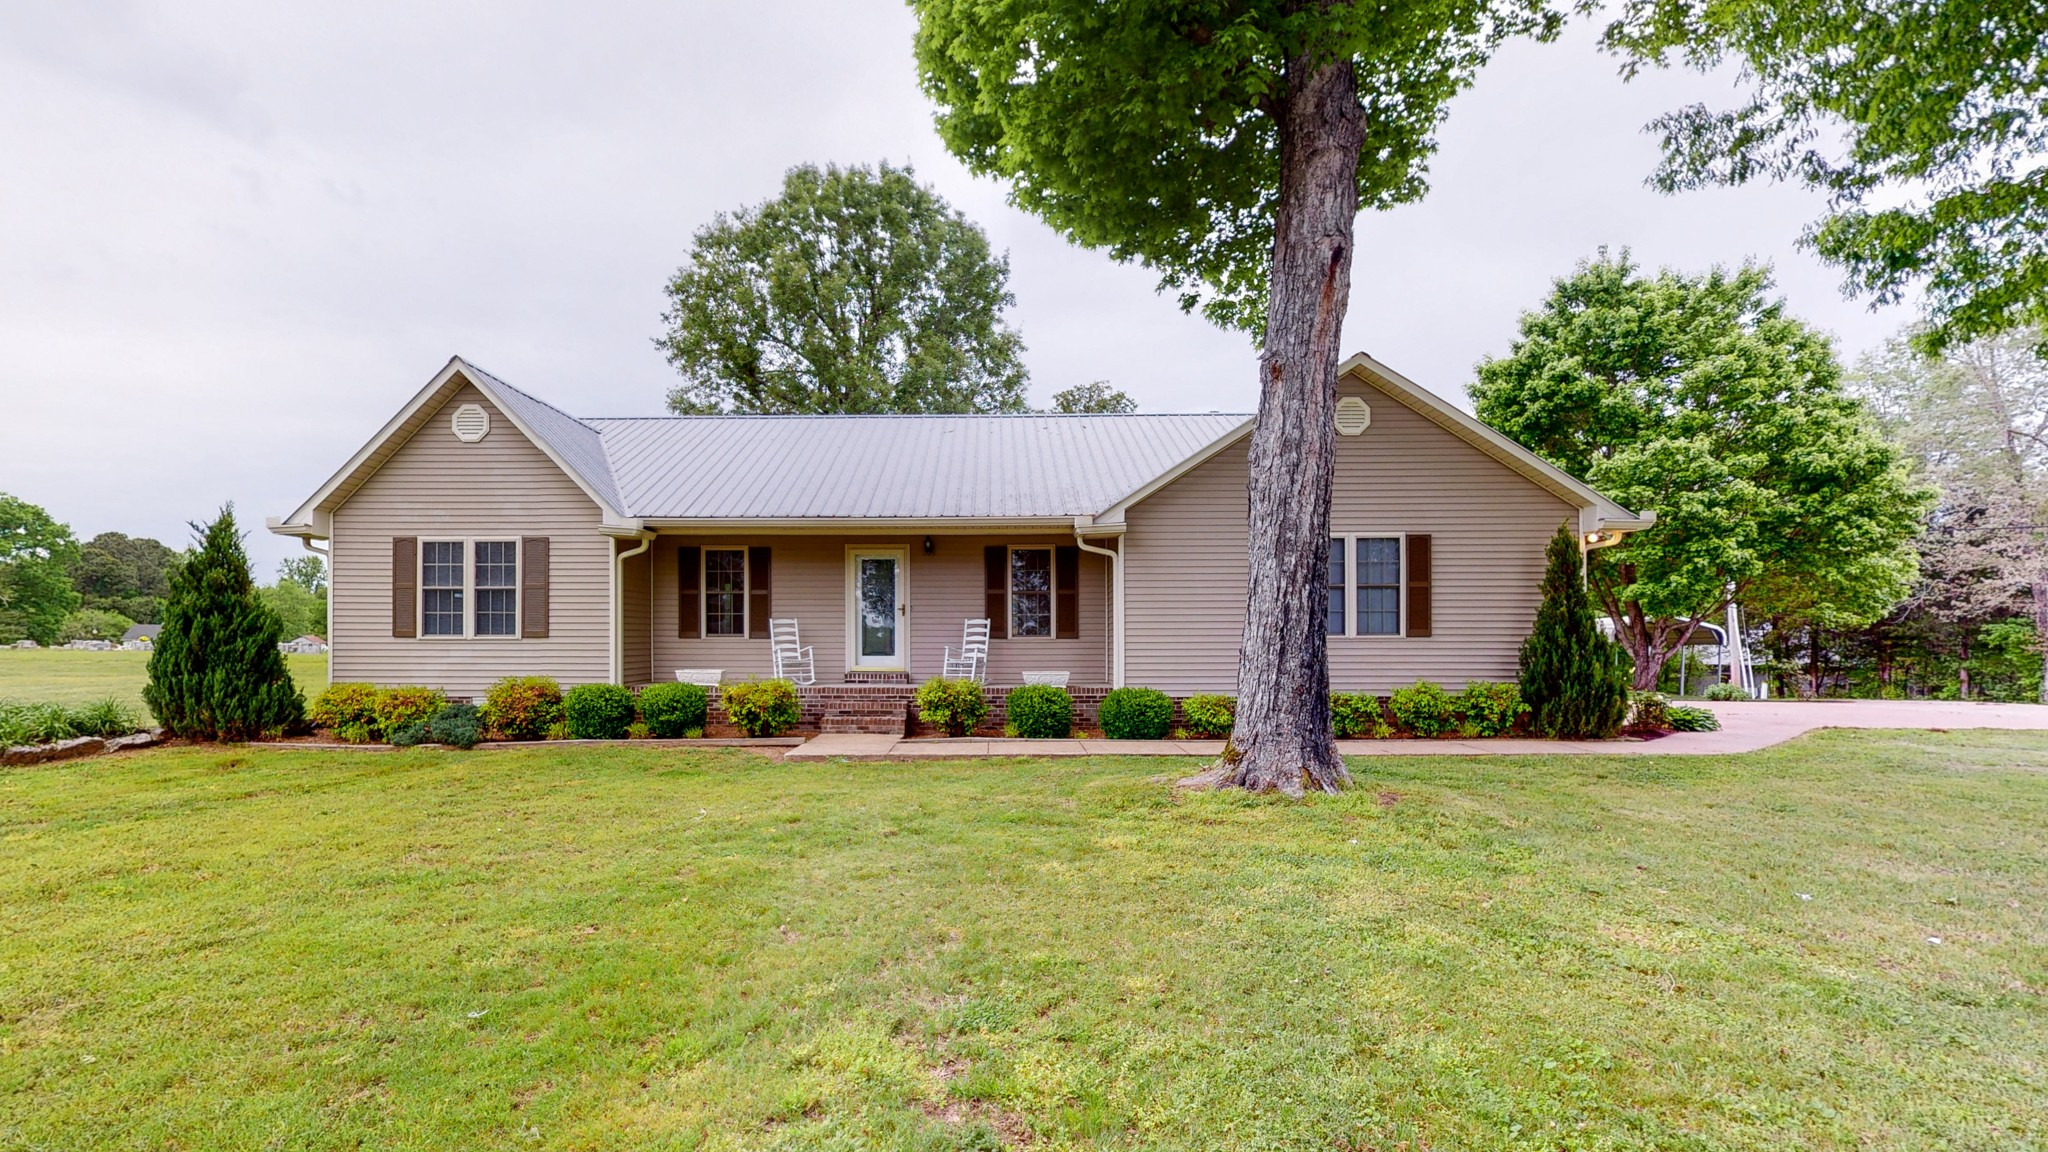 1009 Lower Shipps Bend Rd N Property Photo - Centerville, TN real estate listing